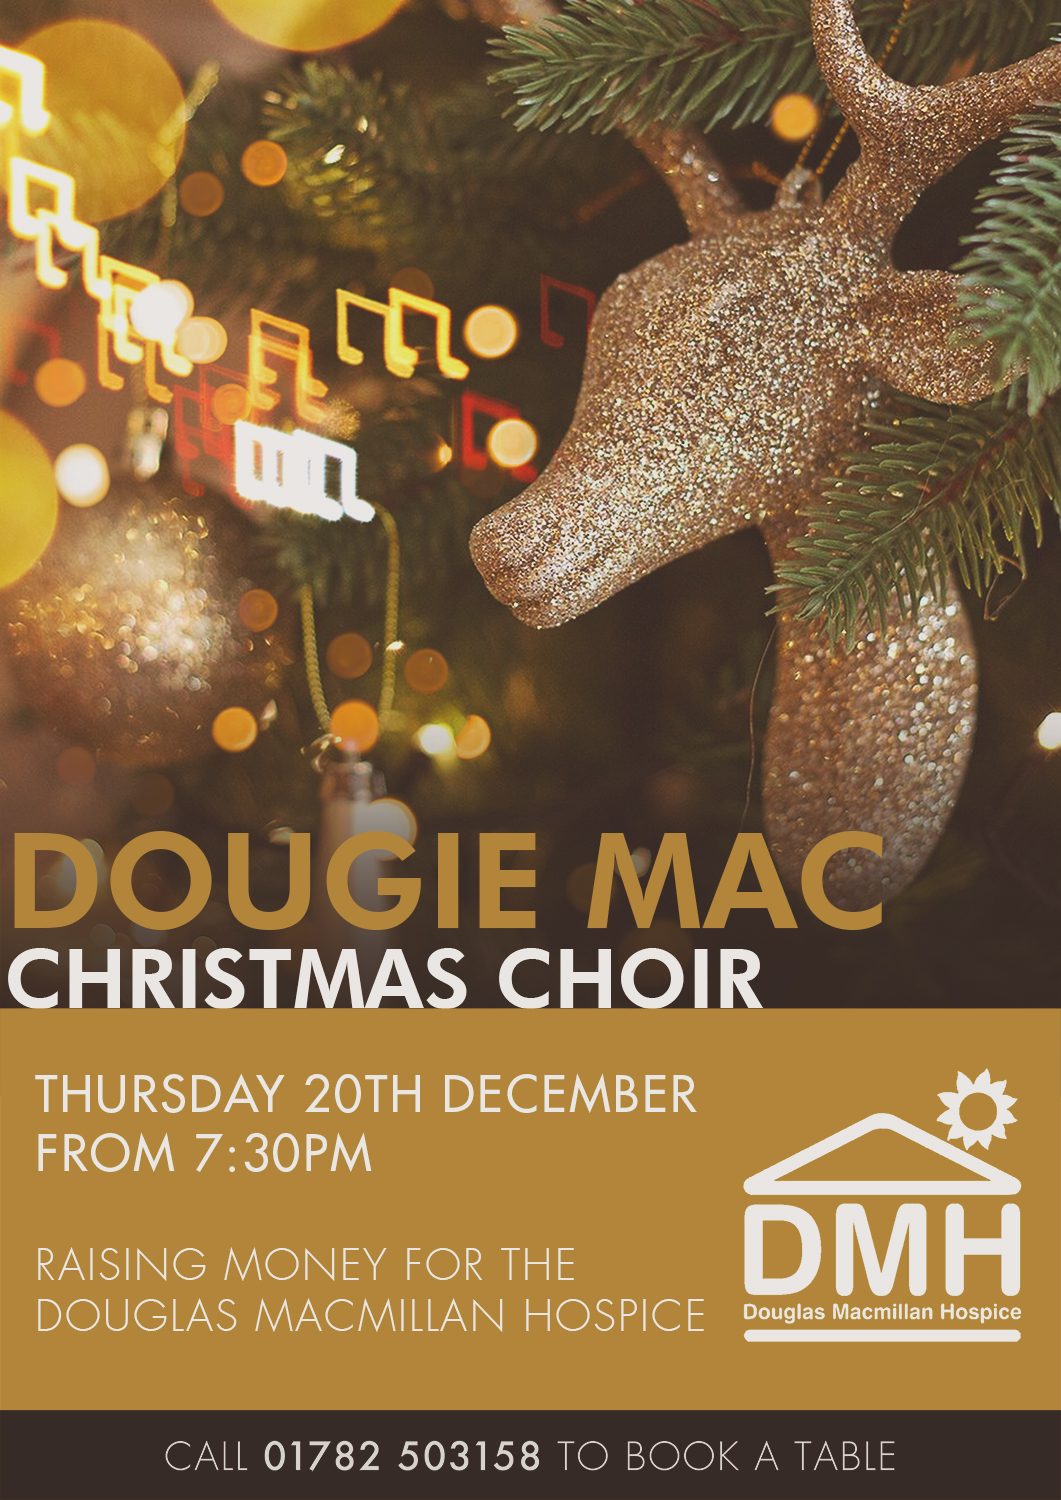 Come and see the Dougie Mac Choir perform live at Greenway Hall...